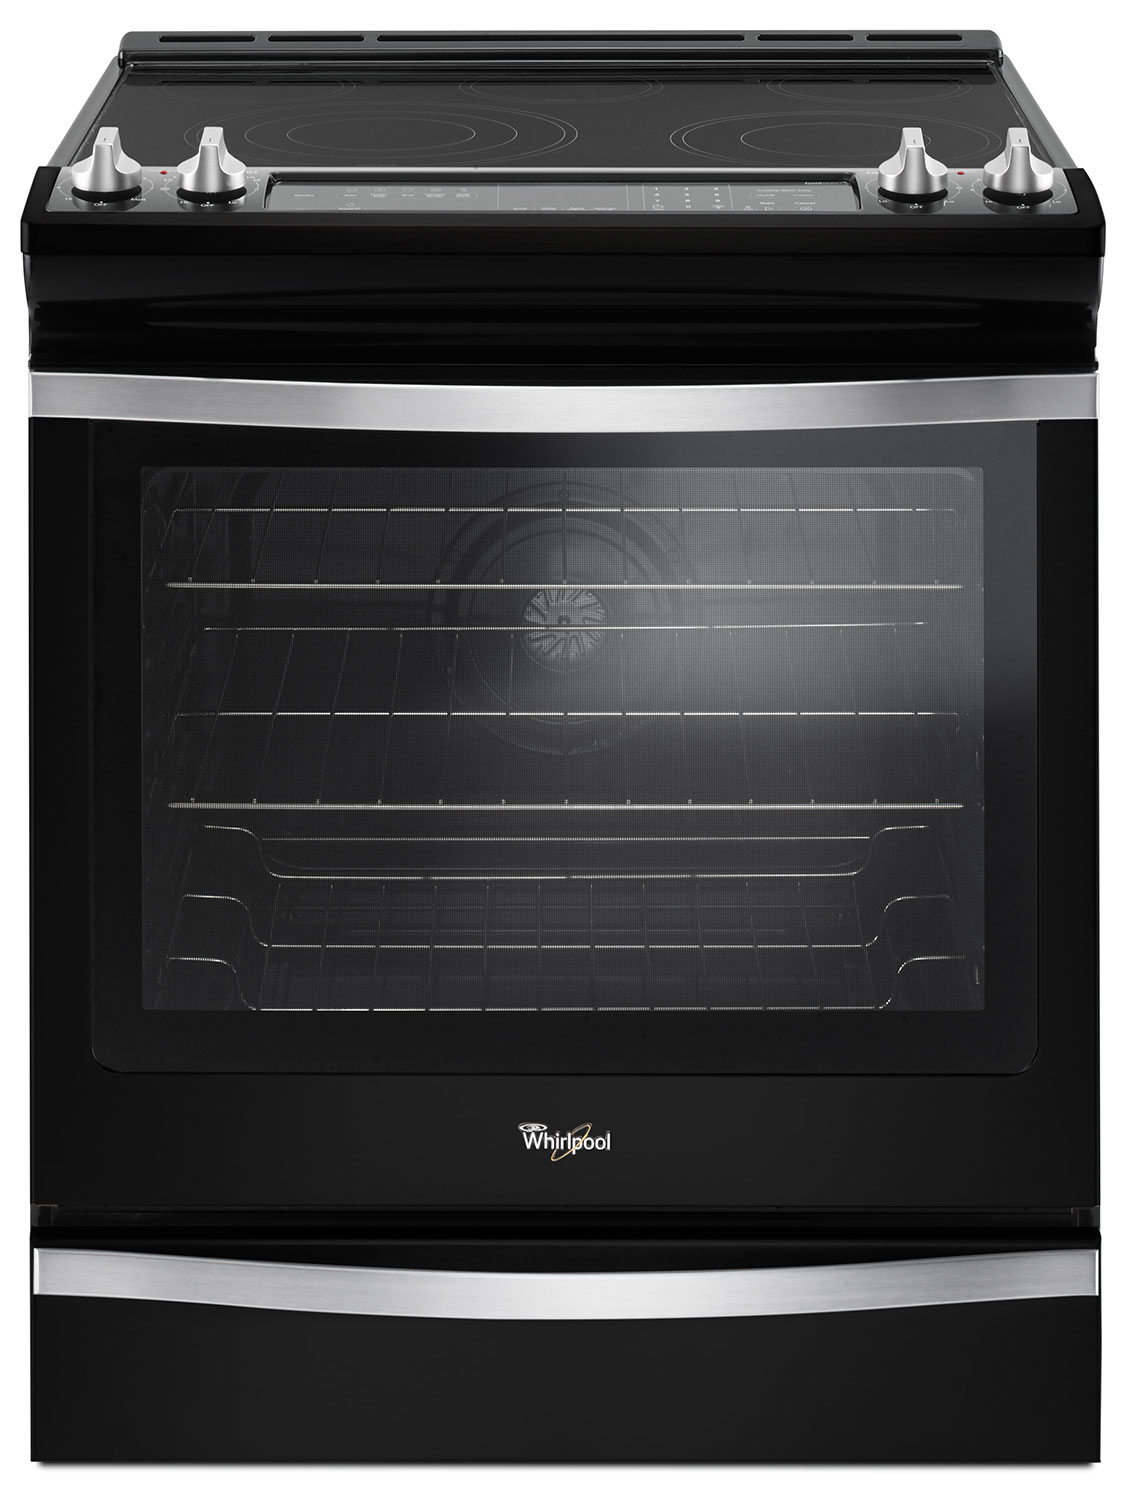 Whirlpool 6.4 Cu. Ft. Slide-In Electric Range – YWEE745H0FE